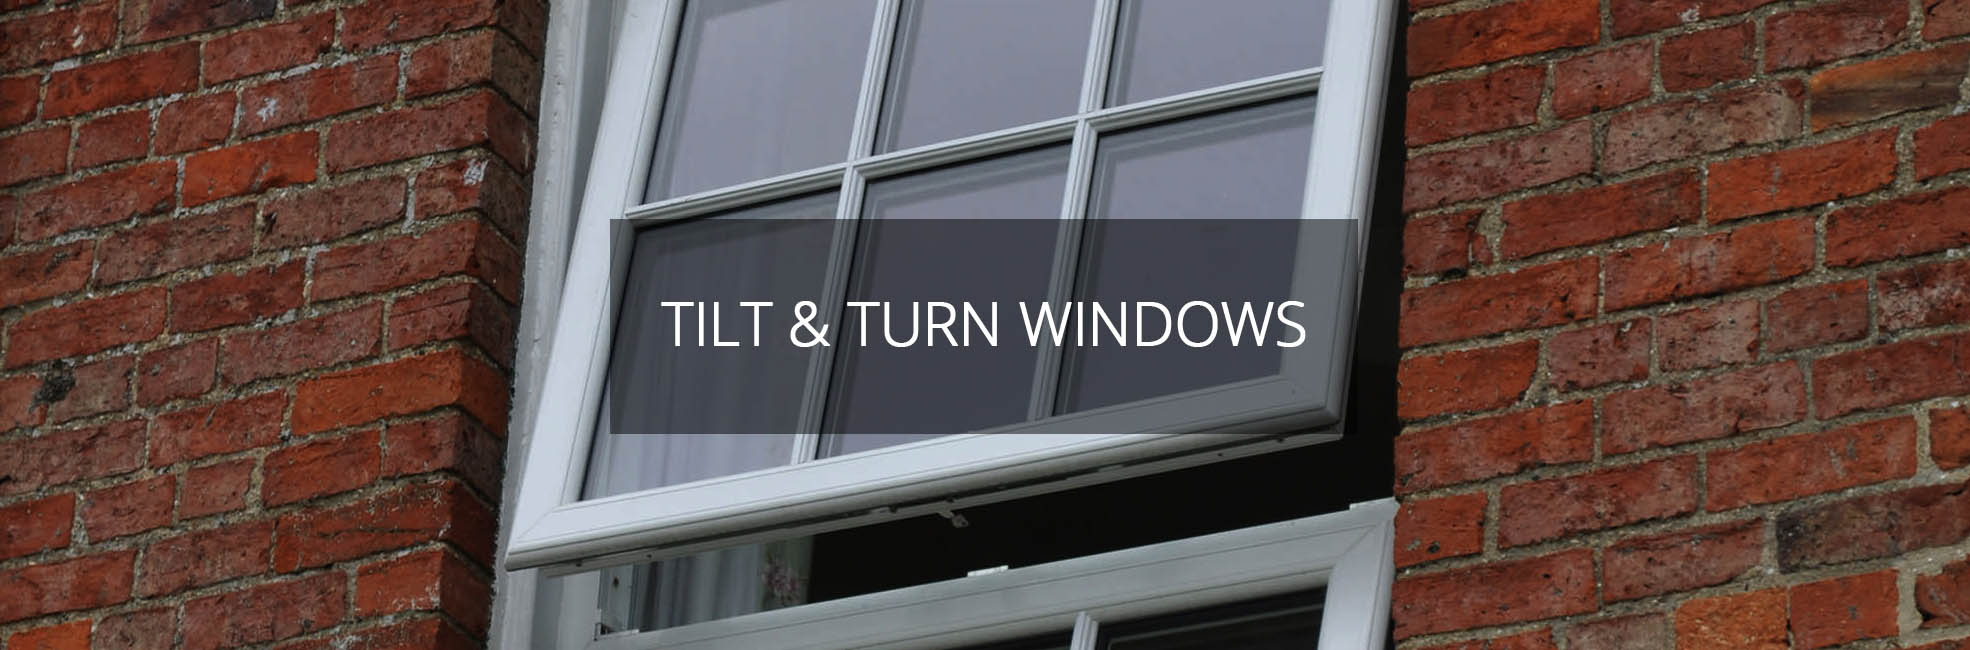 Tilt & Turn Windows Northampton